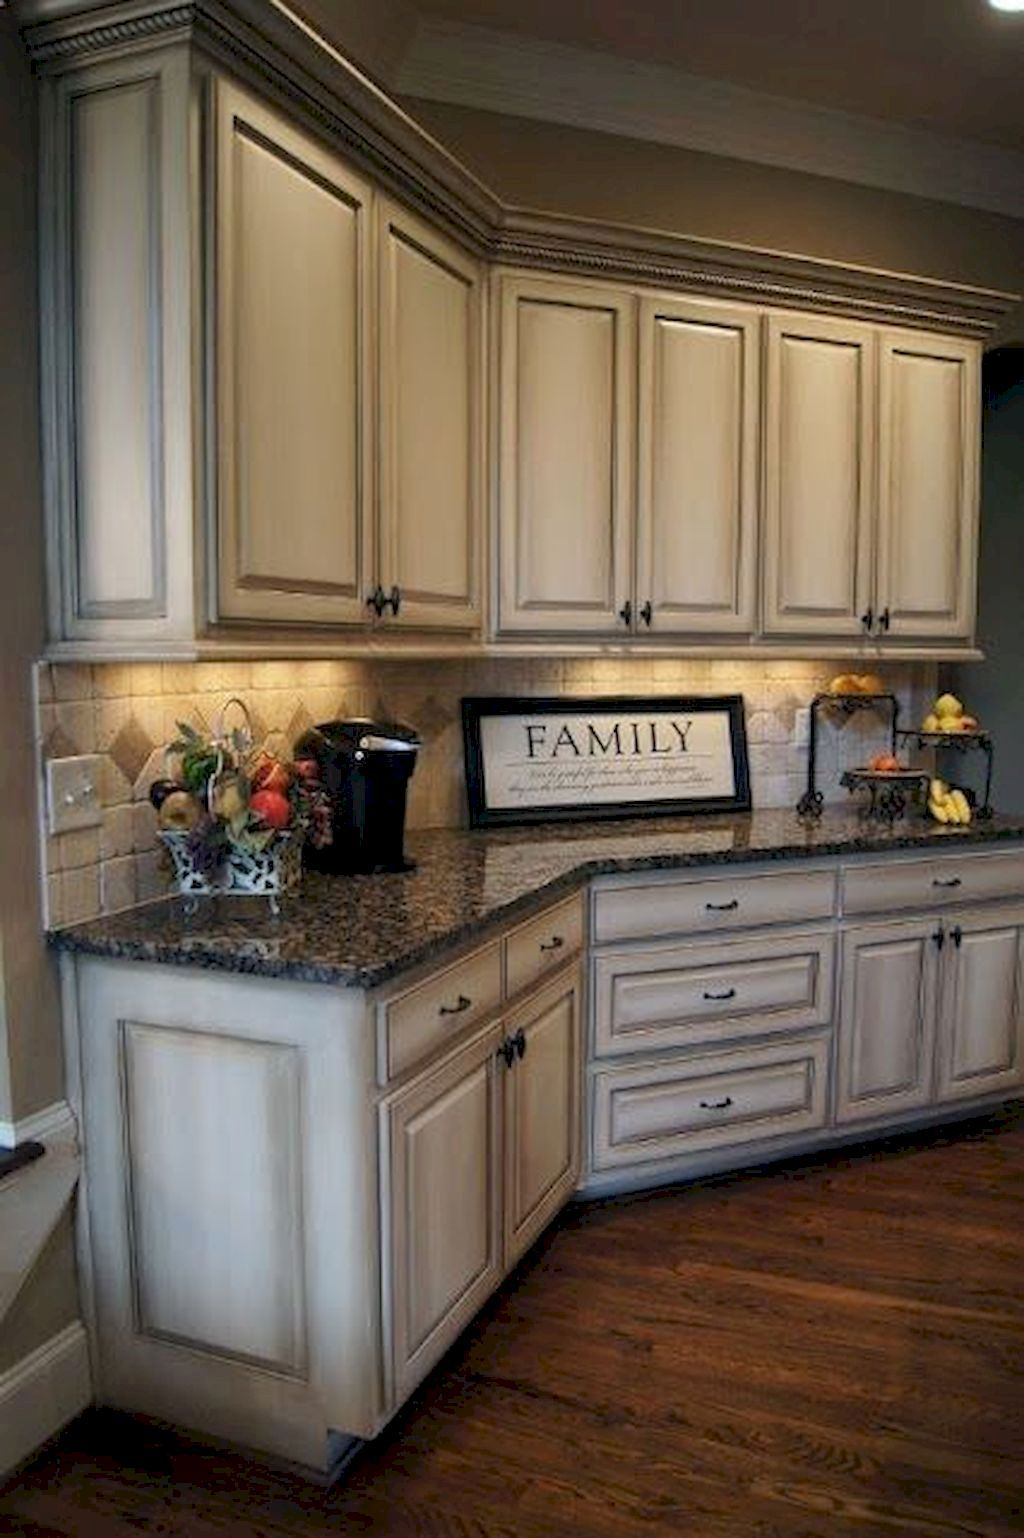 Gorgeous 80 Gorgeous Farmhouse Gray Kitchen Cabinet Design Ideas Https Rusticroo Antique White Kitchen Antique White Kitchen Cabinets Rustic Kitchen Cabinets